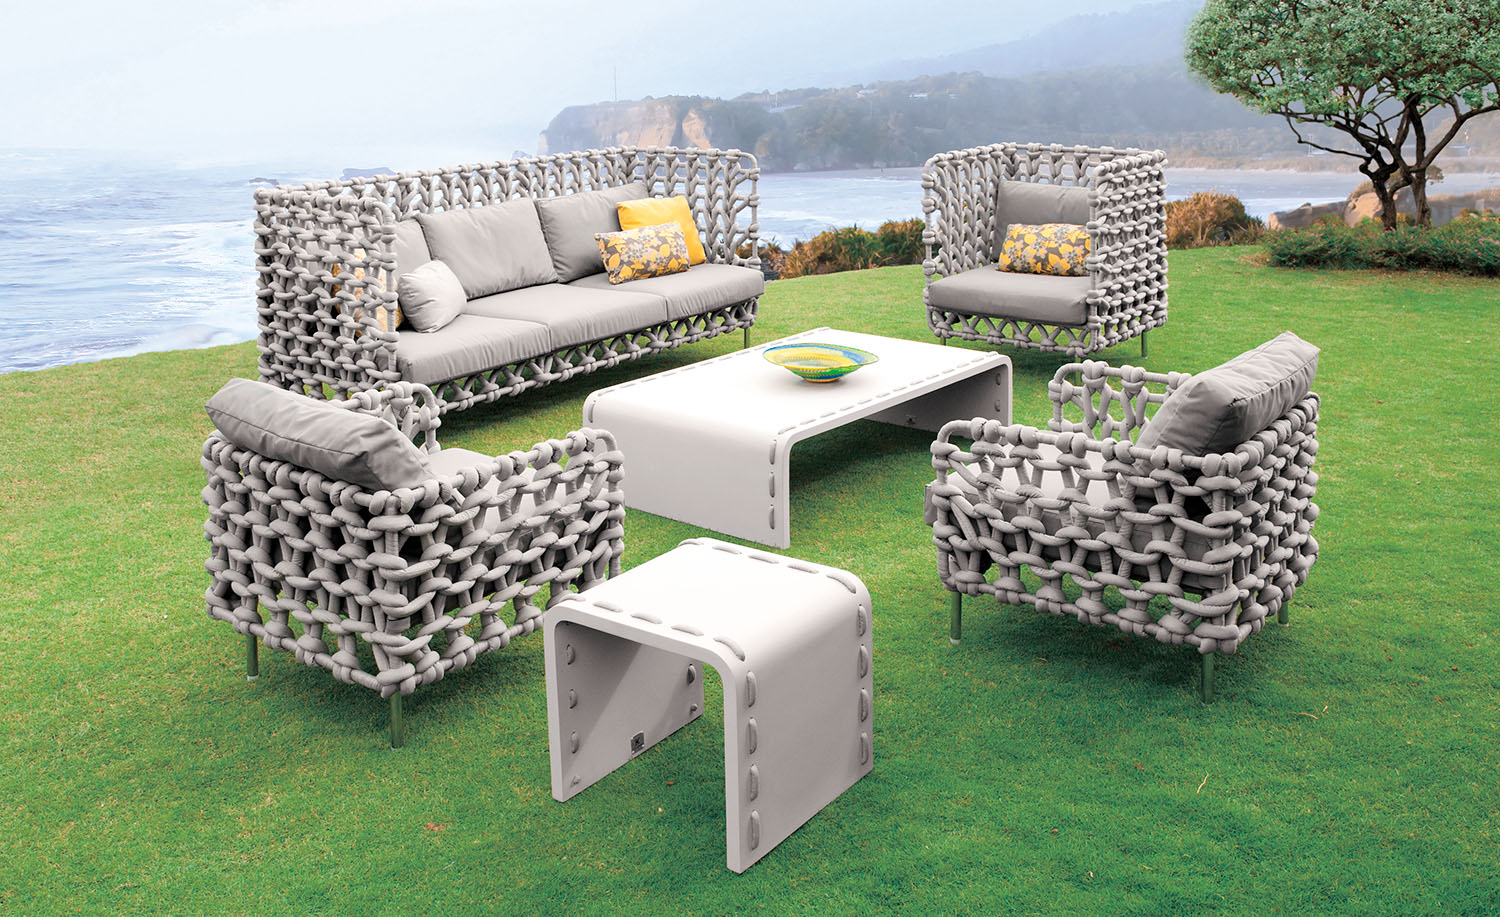 cabaret outdoor luxury furniture ... - Outdoor Furniture Design Ideas Stylish Outdoor Furniture Ideas